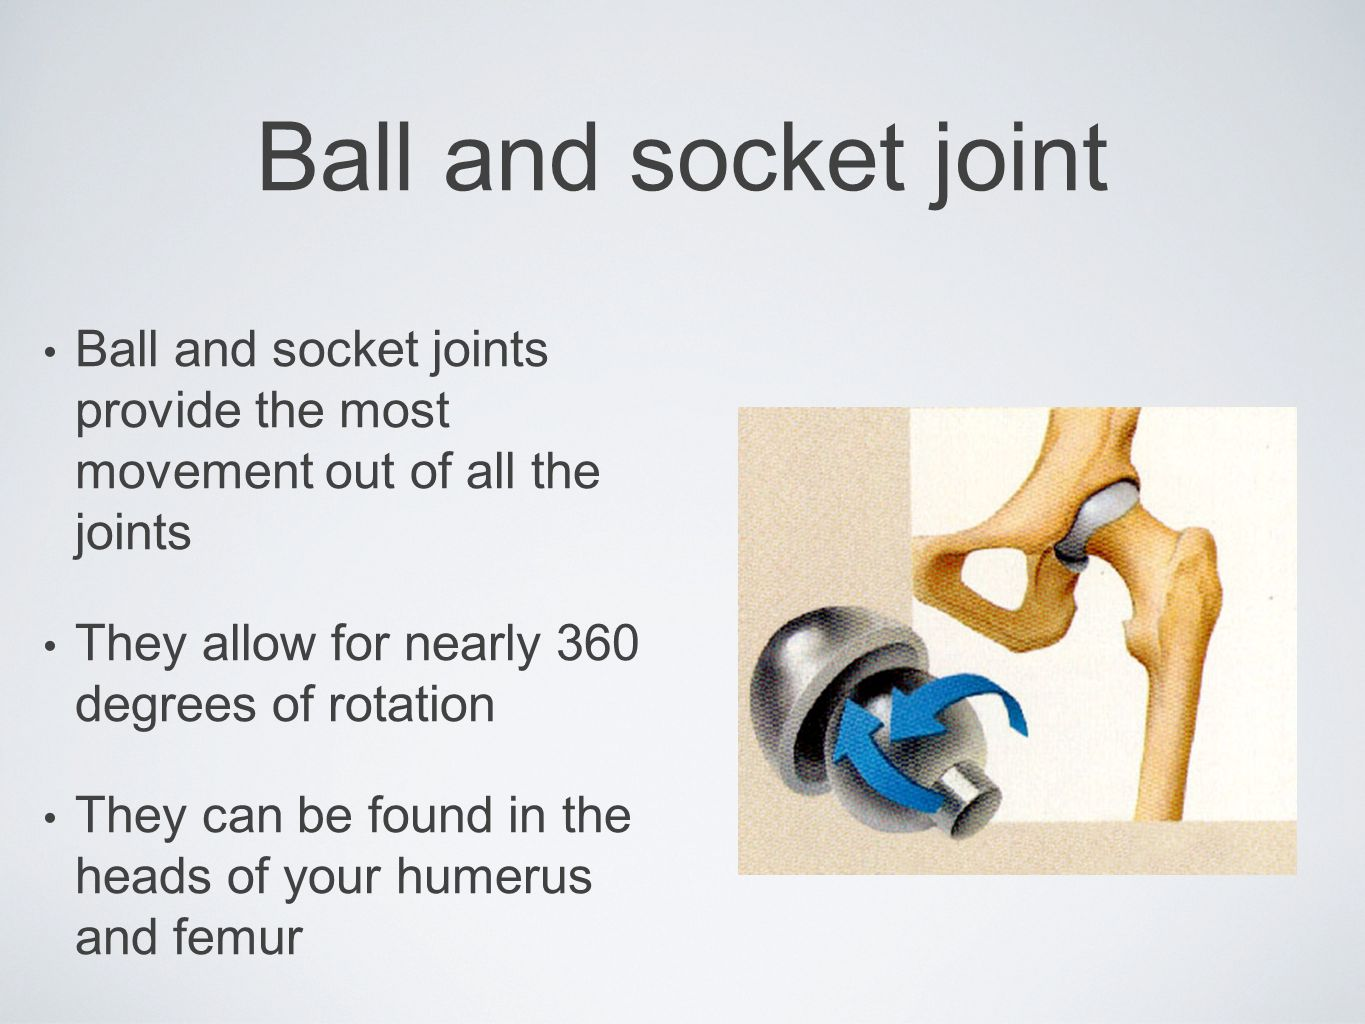 Ball and socket joint Ball and socket joints provide the most movement out of all the joints. They allow for nearly 360 degrees of rotation.